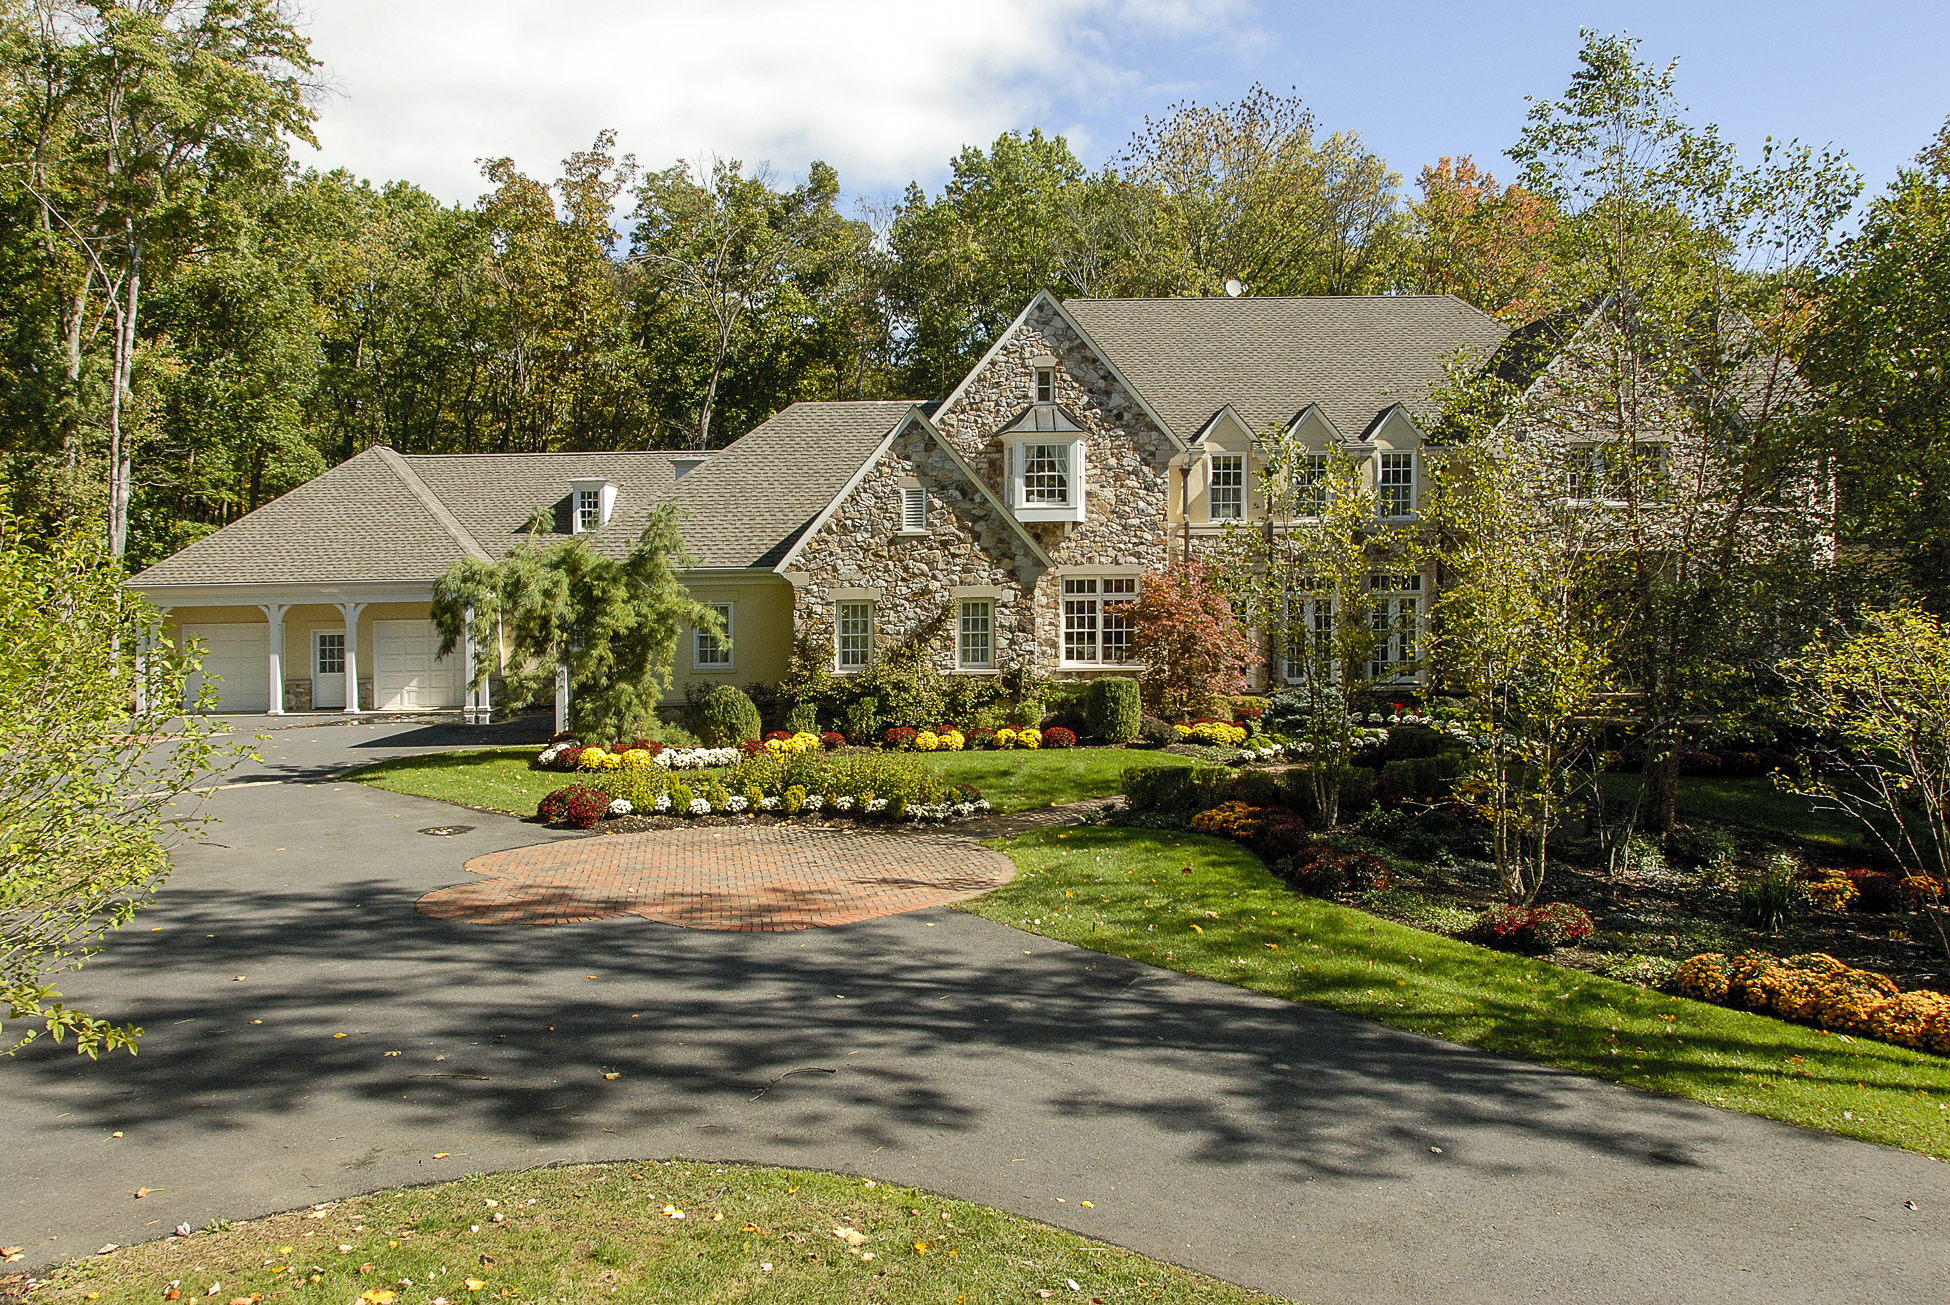 Single Family Home for Sale at Magnificent Manor Home in Princeton's Coveted Rushbrook 27 Running Cedar Road Princeton, 08540 United States